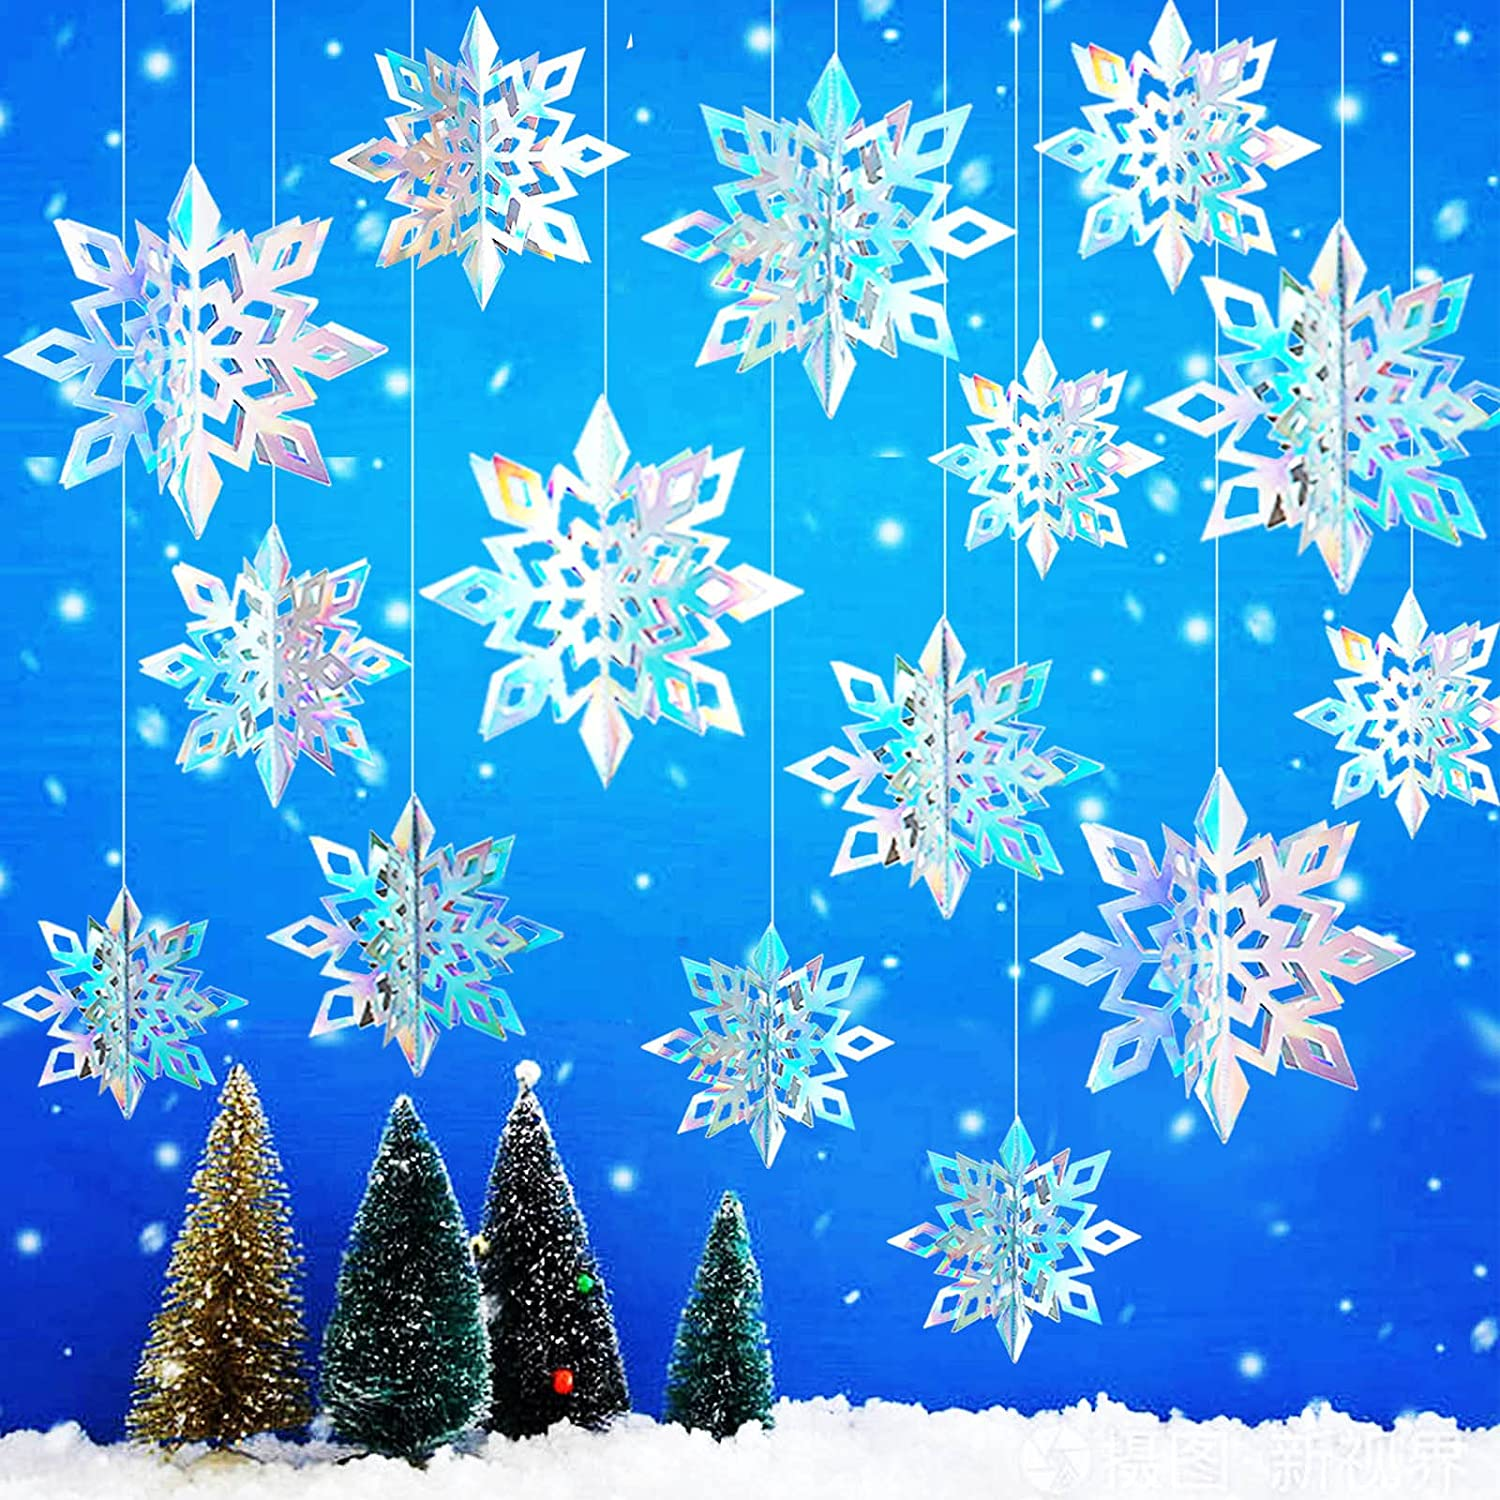 15pcs Winter Christmas Hanging Snowflake Decorations, 3D Holographic Snowflakes for Christmas Winter Wonderland Decorations Frozen Birthday New Year Party Home Decorations